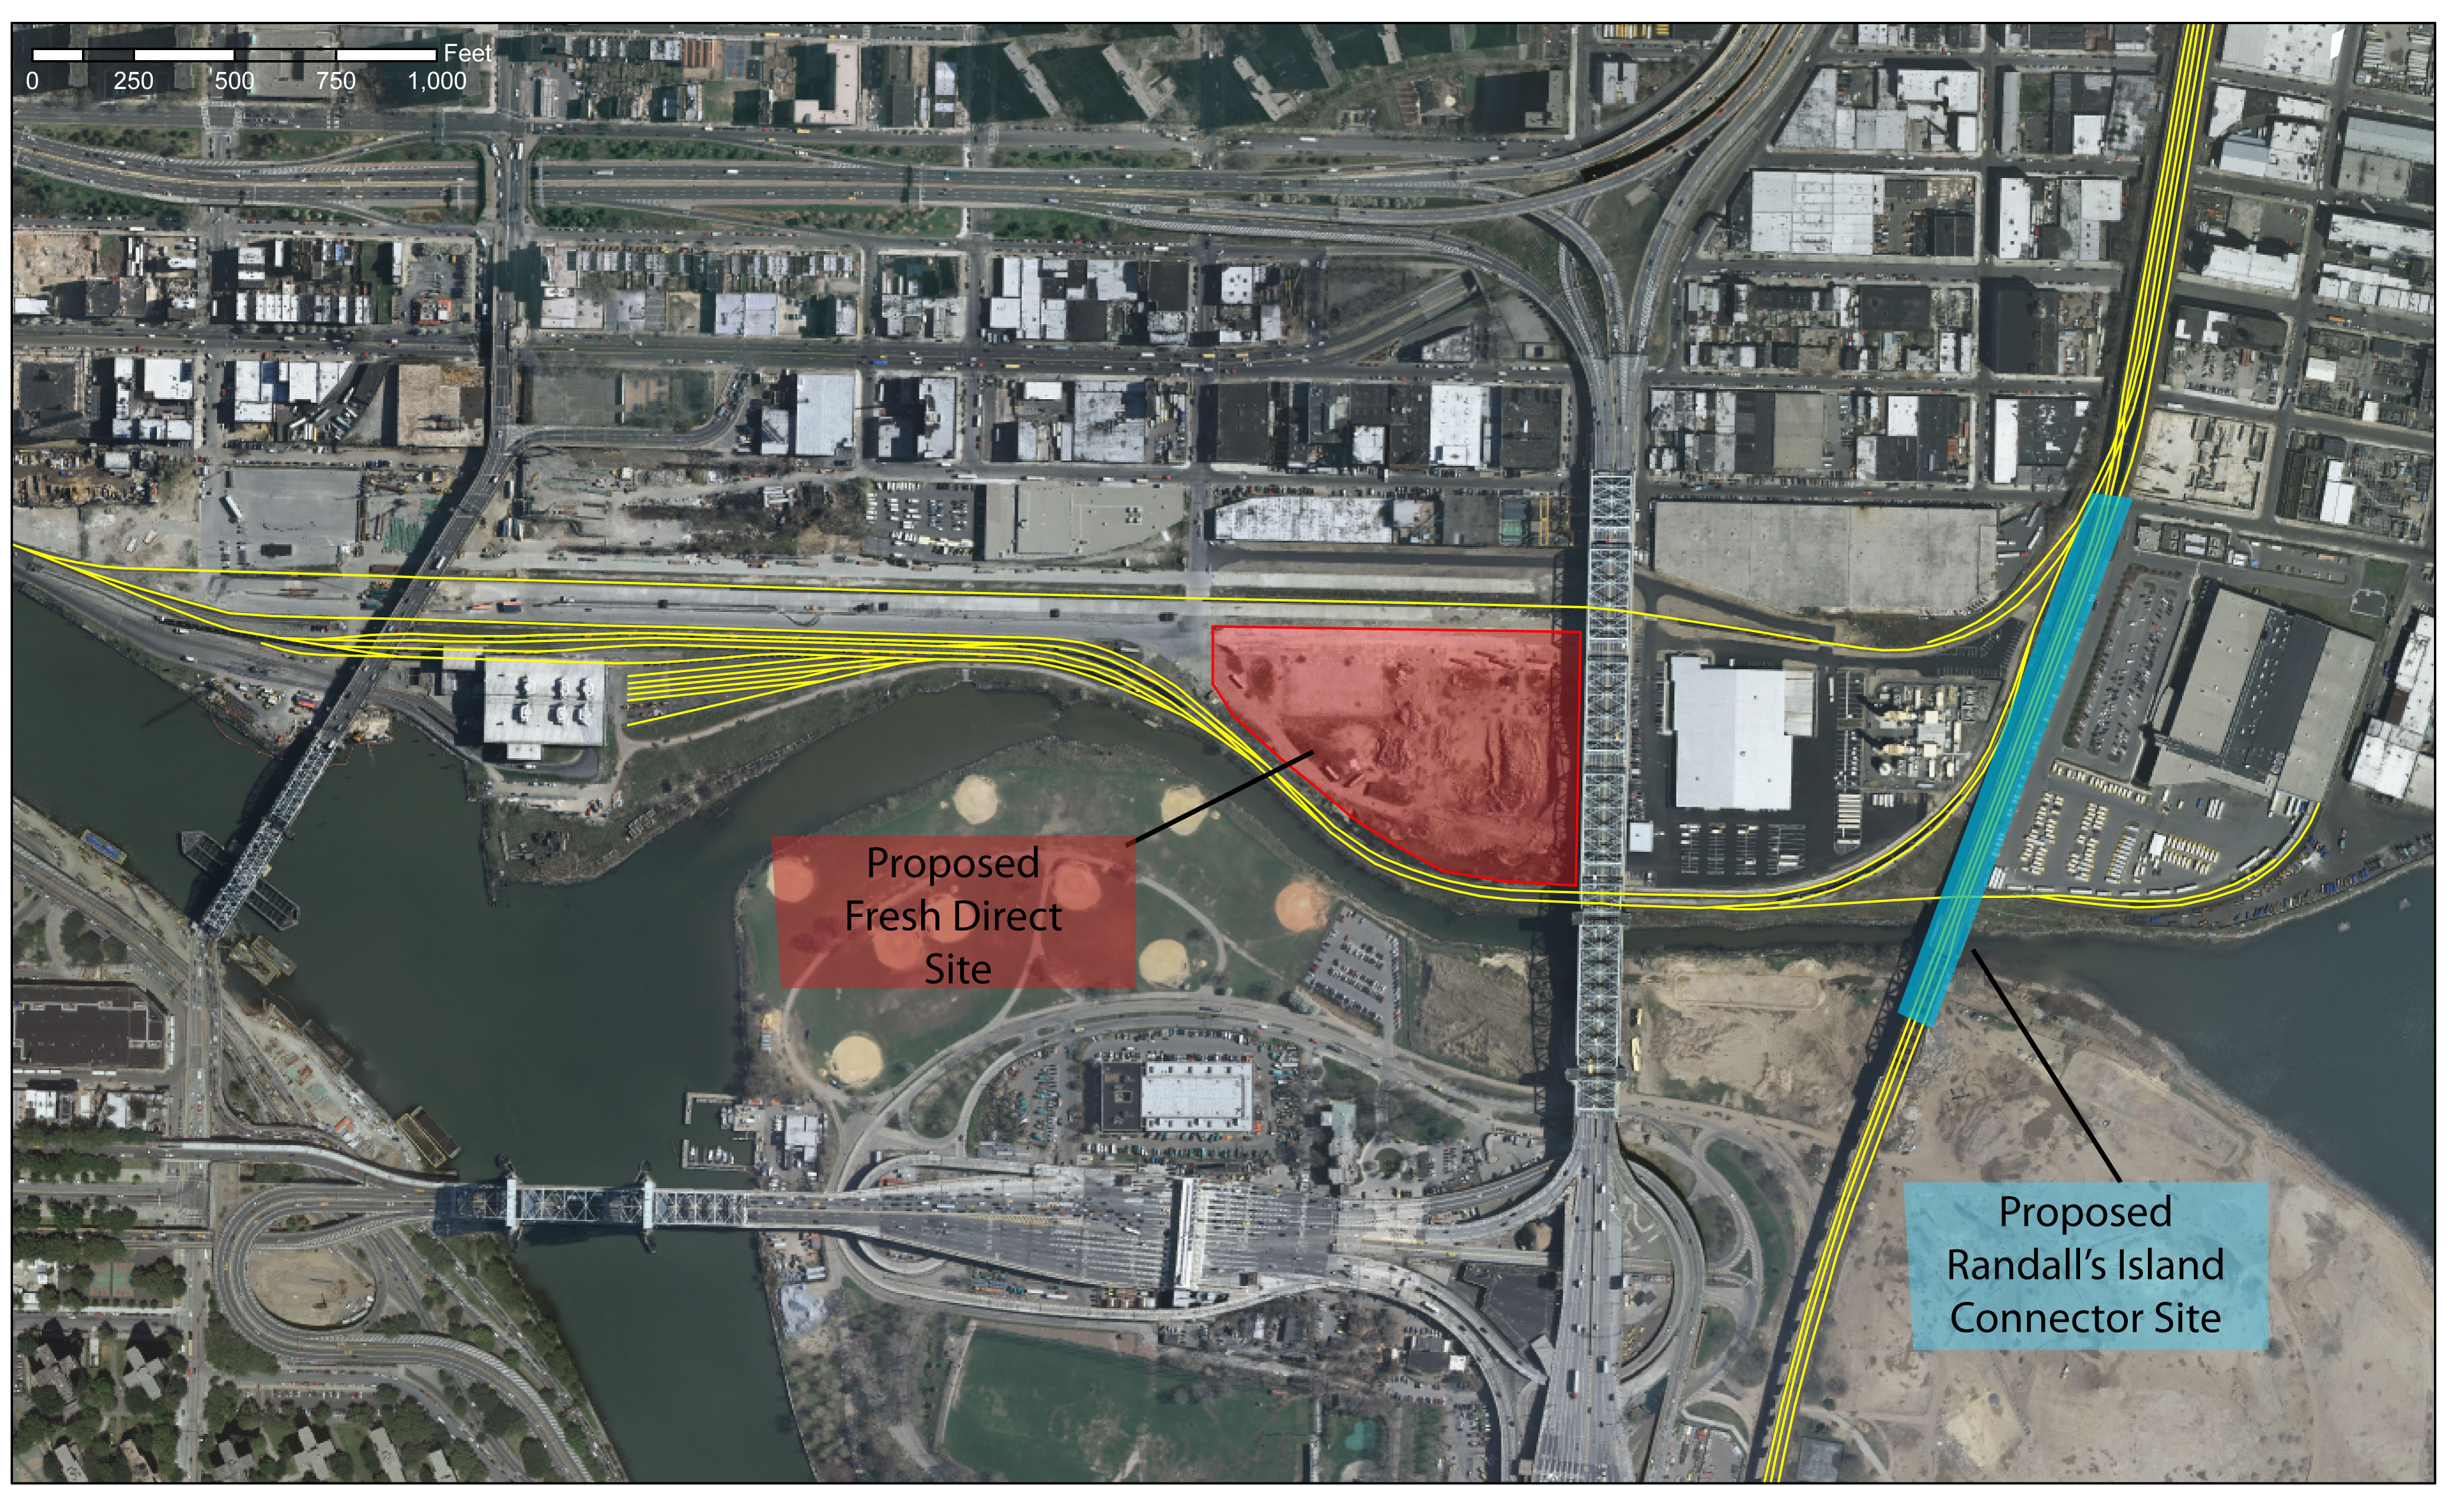 This satellite image supplied by the city's Economic Develpment Corporation shows the location of the Randall's Island Connector in relation to FreshDirect's site.